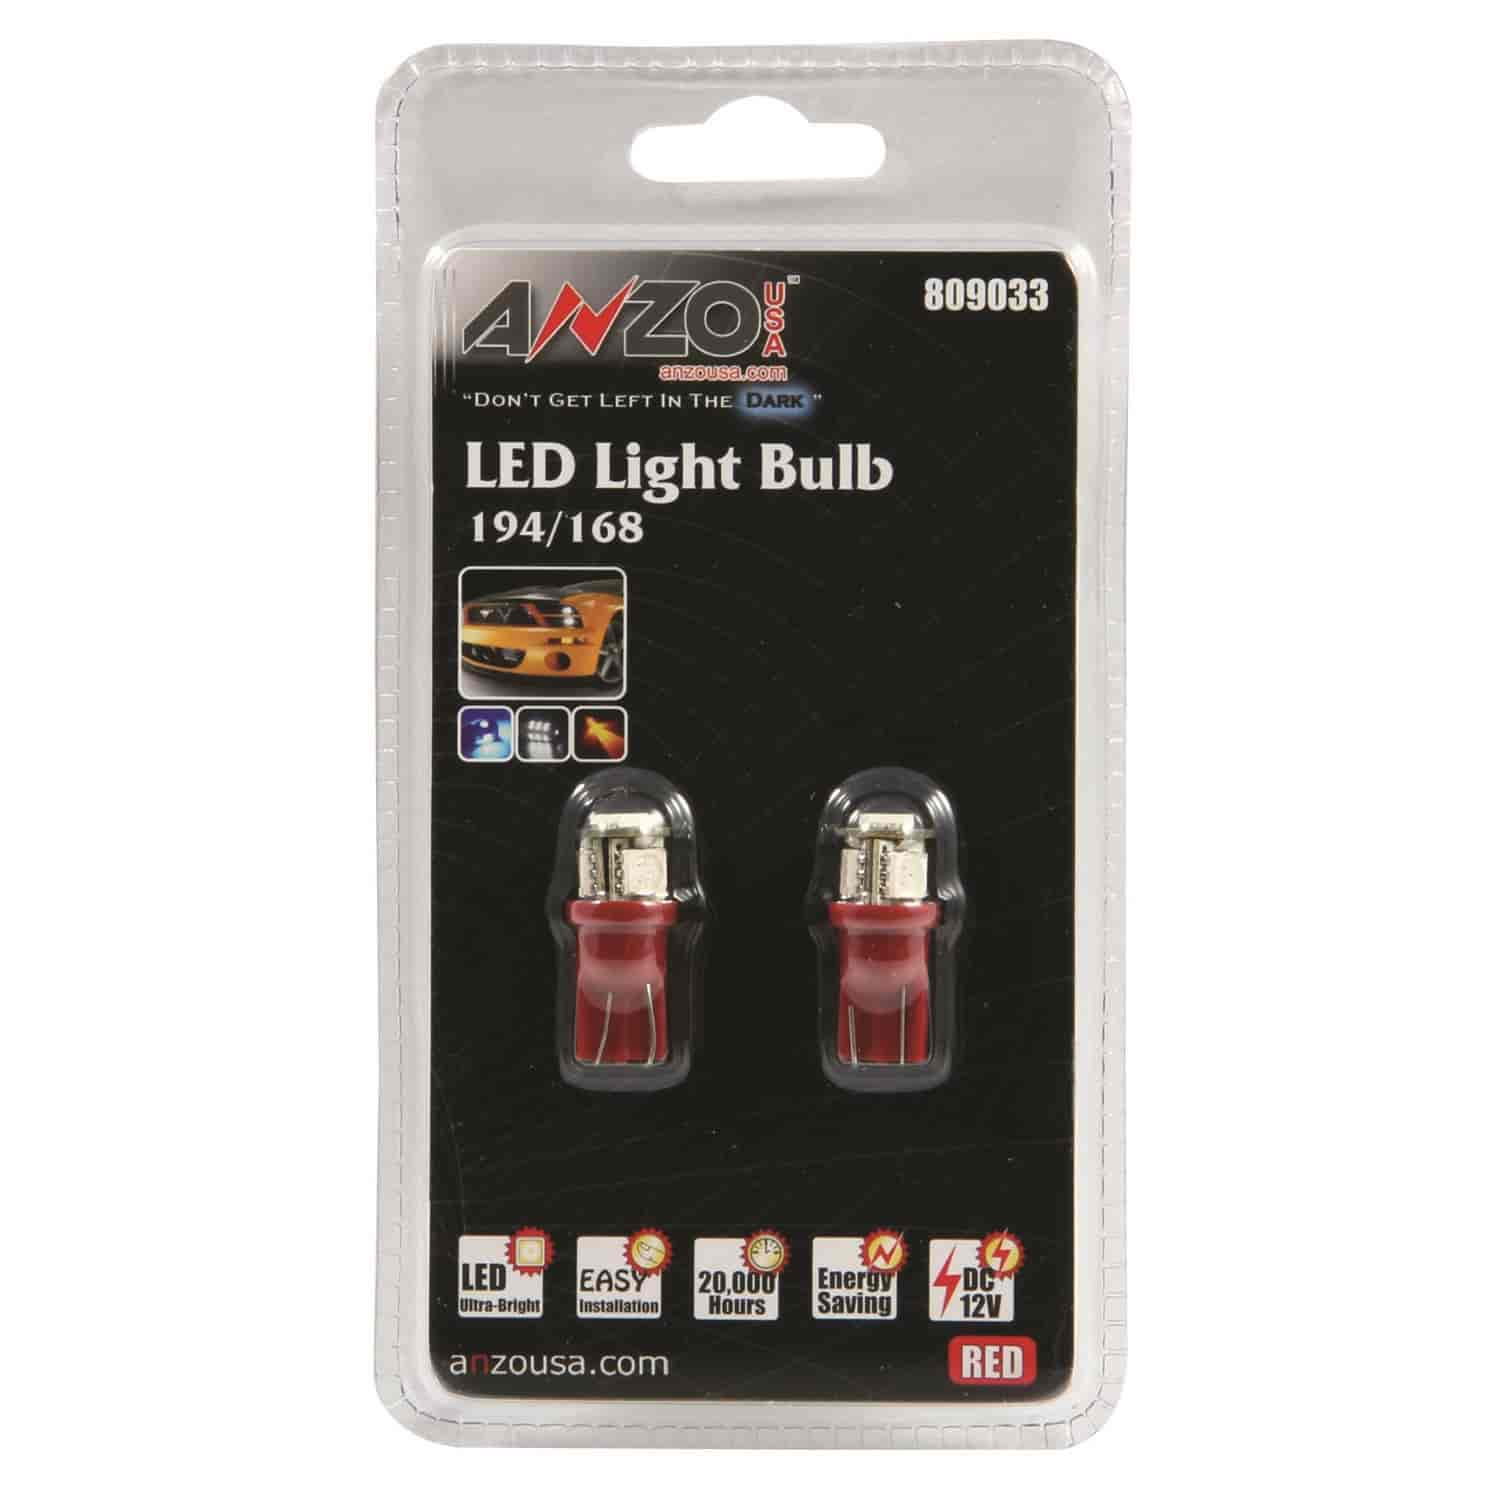 Anzo 809033 - Anzo LED Universal Light Bulbs